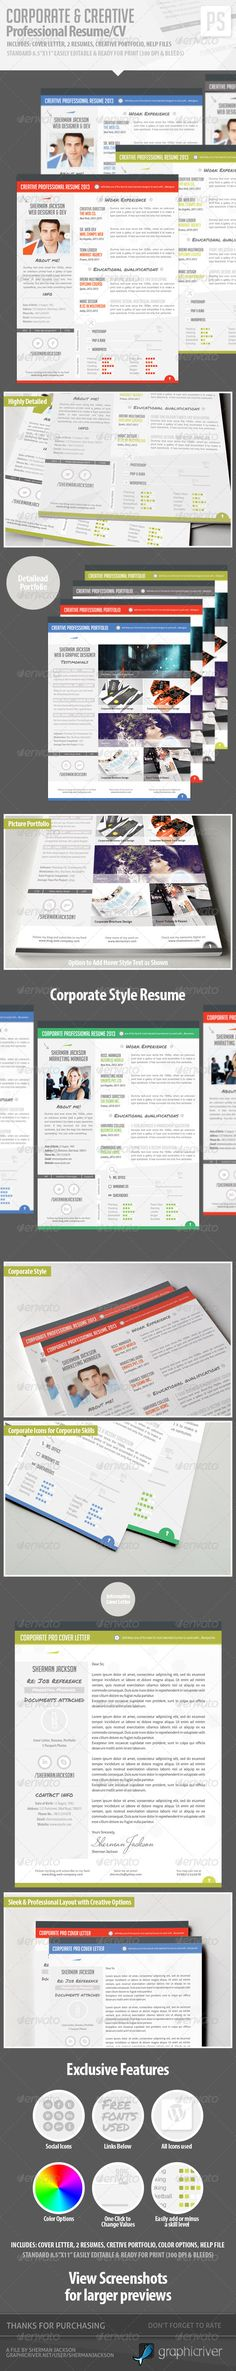 3 Page Business Resume With 3 Color Combinations   Business Resume